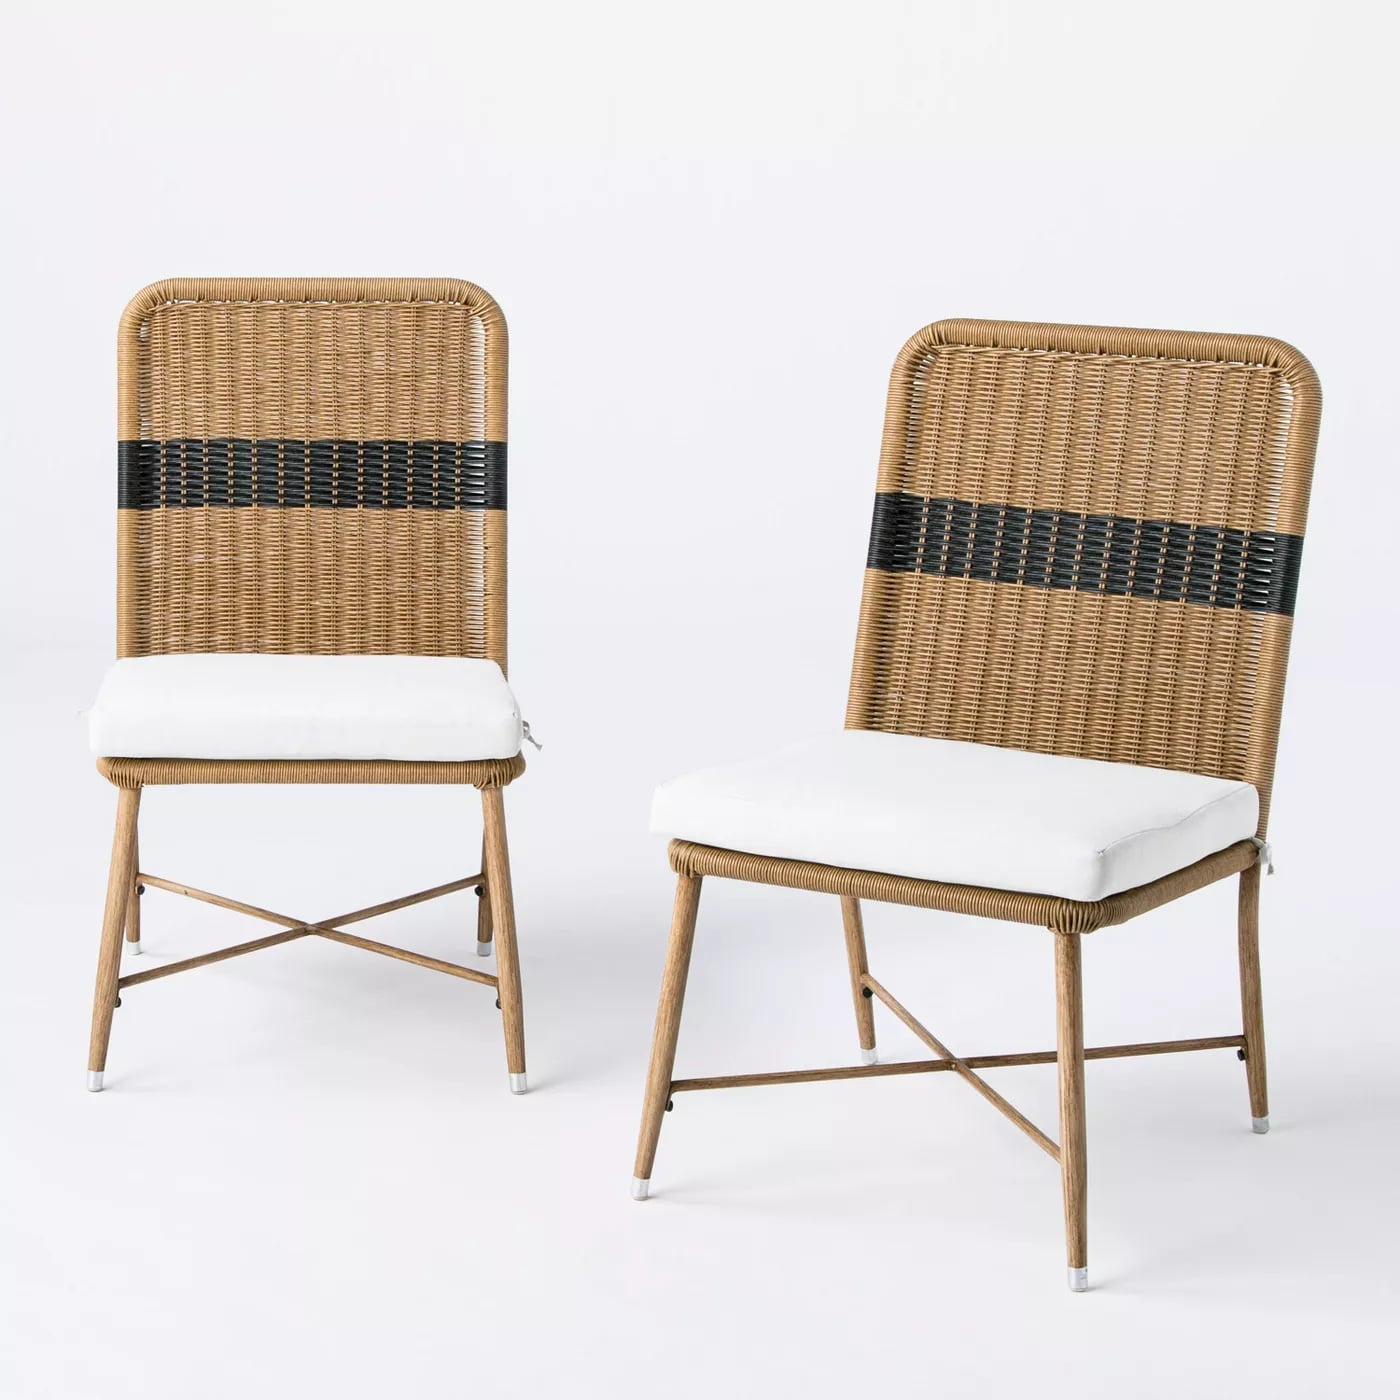 wicker and metal patio dining chairs